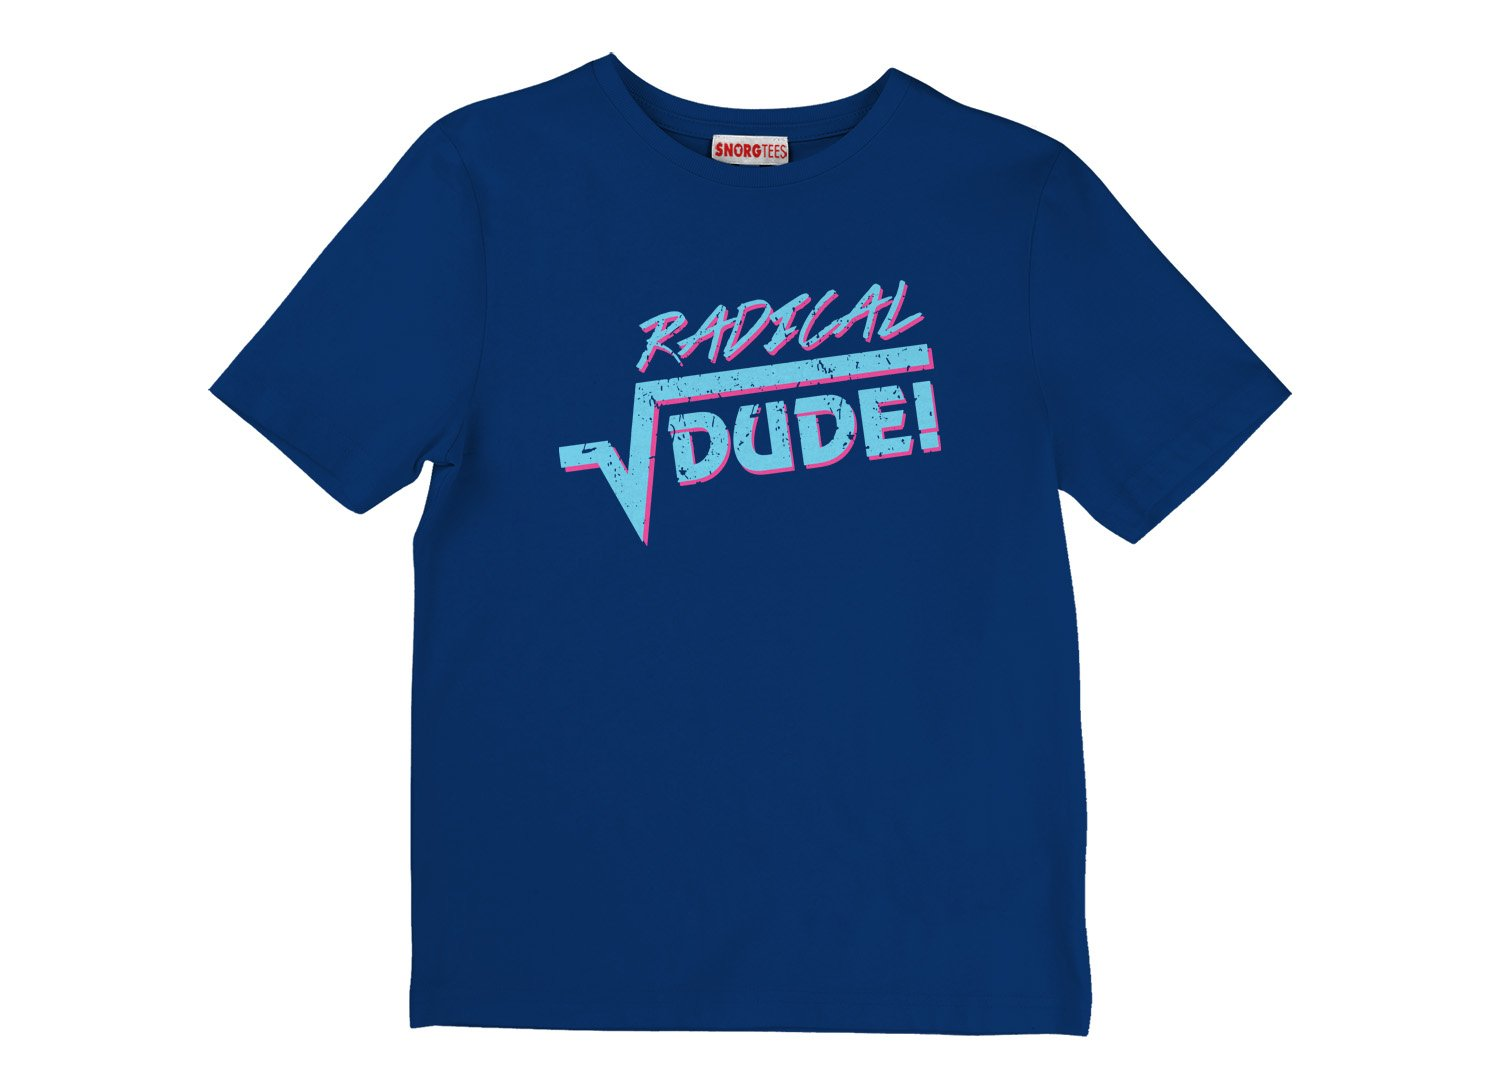 Radical Dude! on Kids T-Shirt